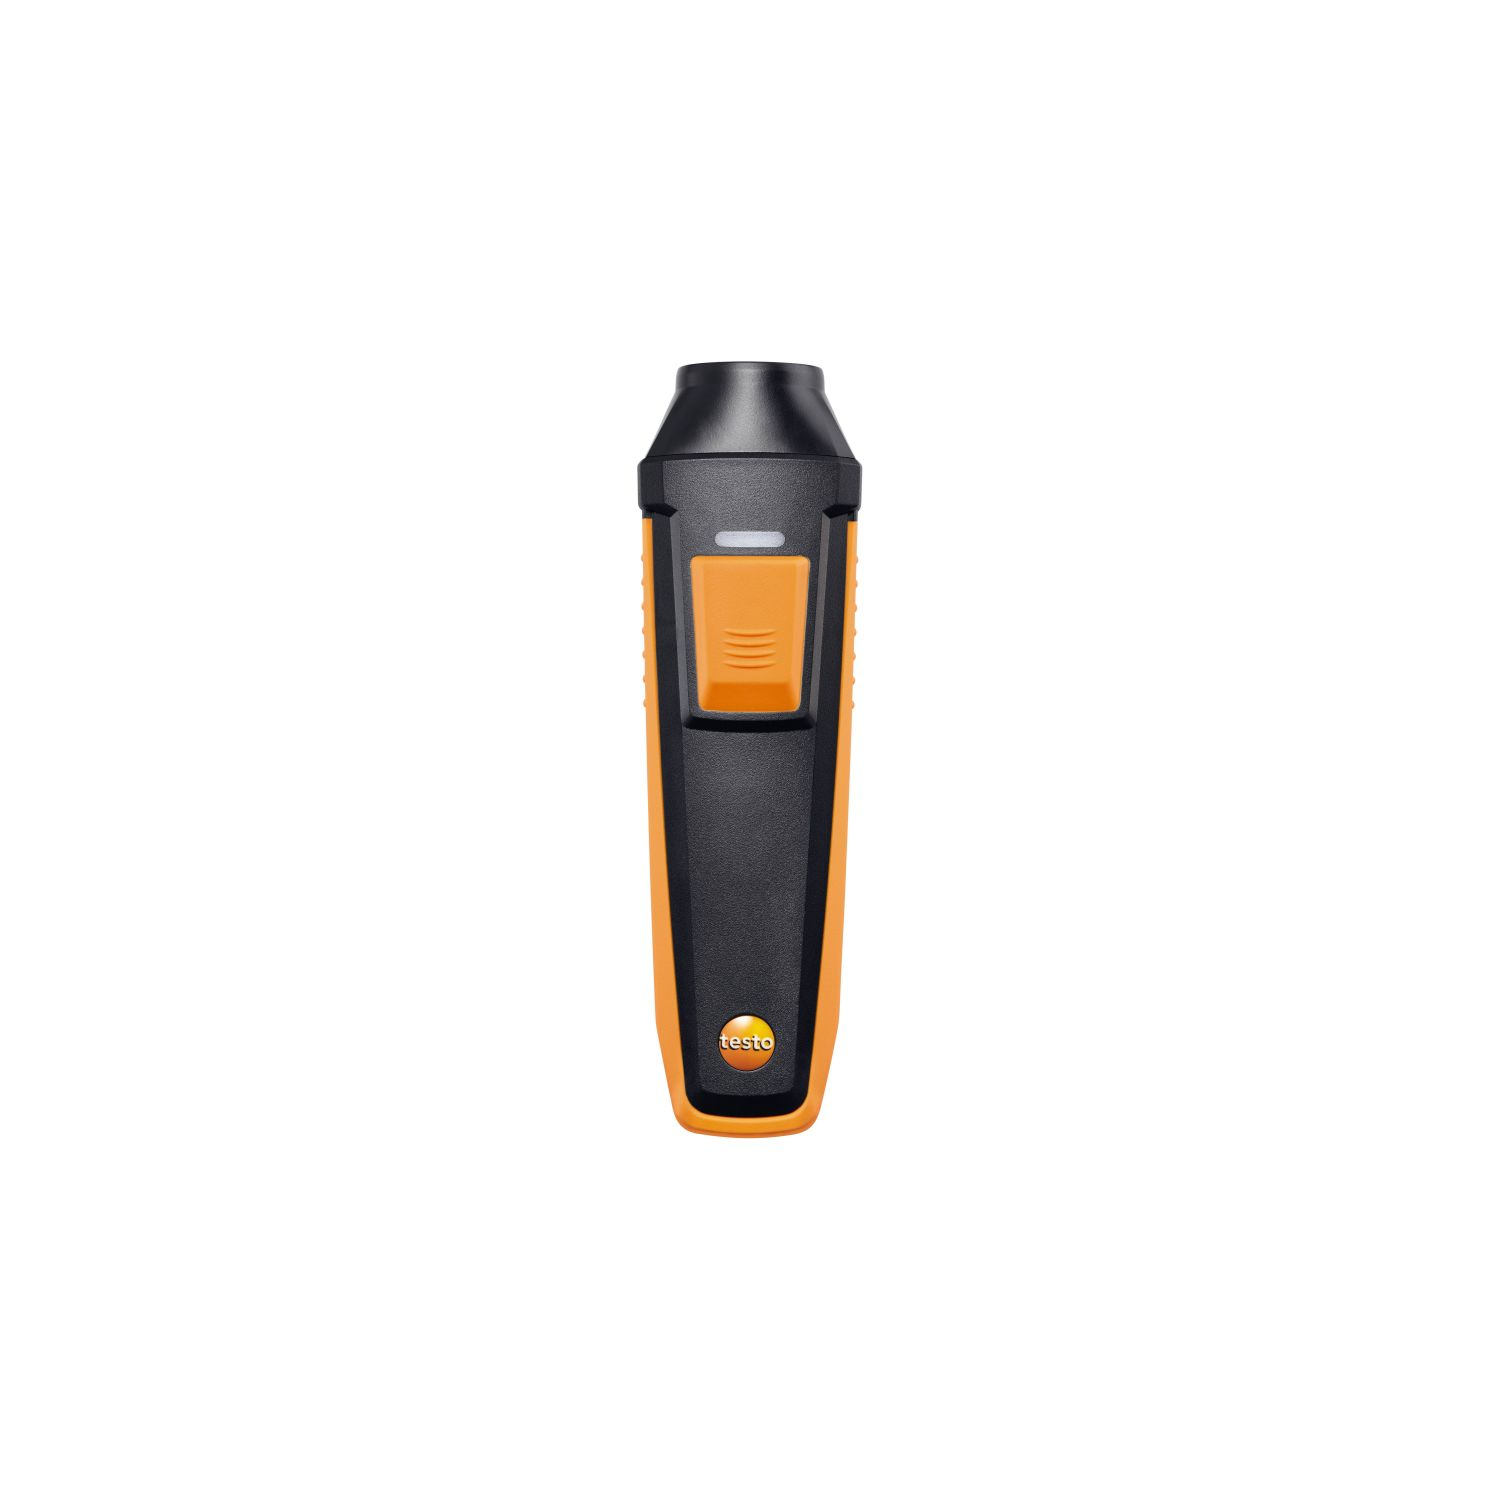 Testo 400 Bluetooth handle for connecting testo 400 series probe heads